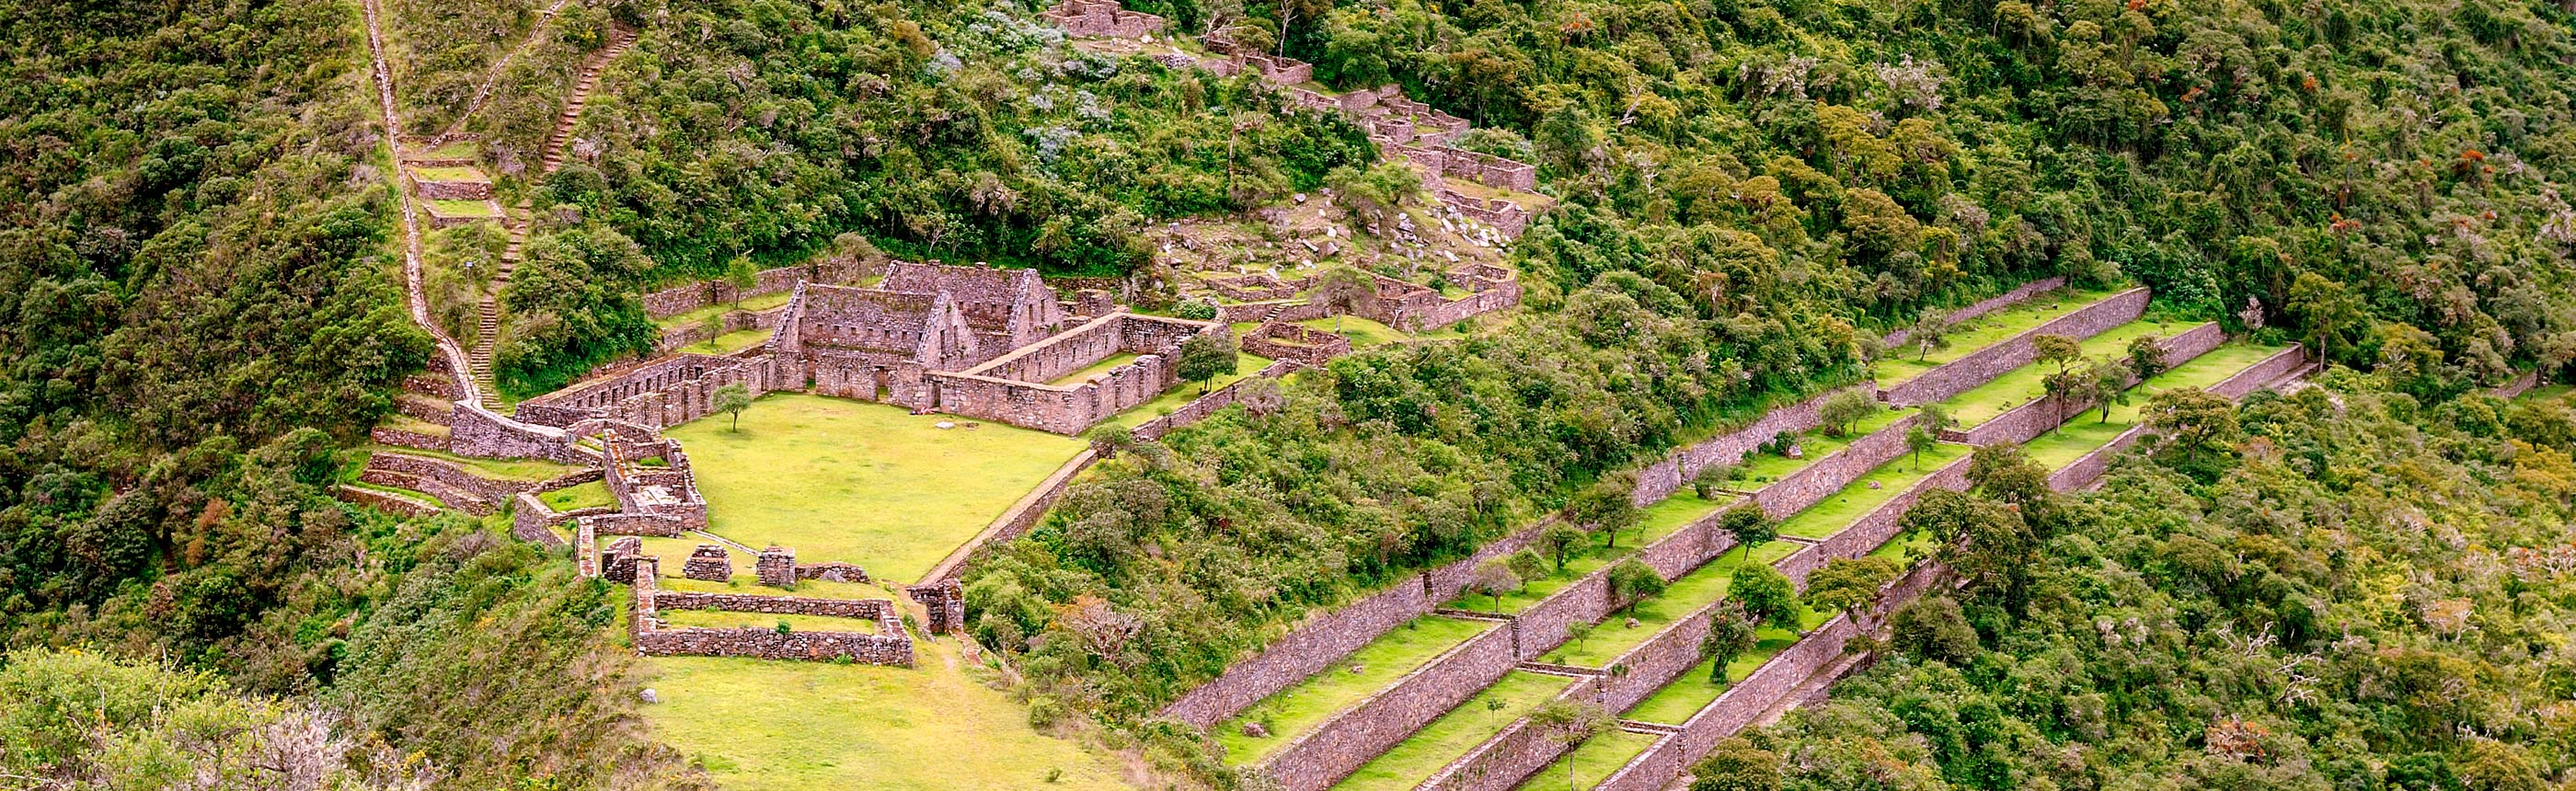 The 5D/4N trek to Choquequirao is 64km/39.76miles and ascends to 3,050m/10,006f